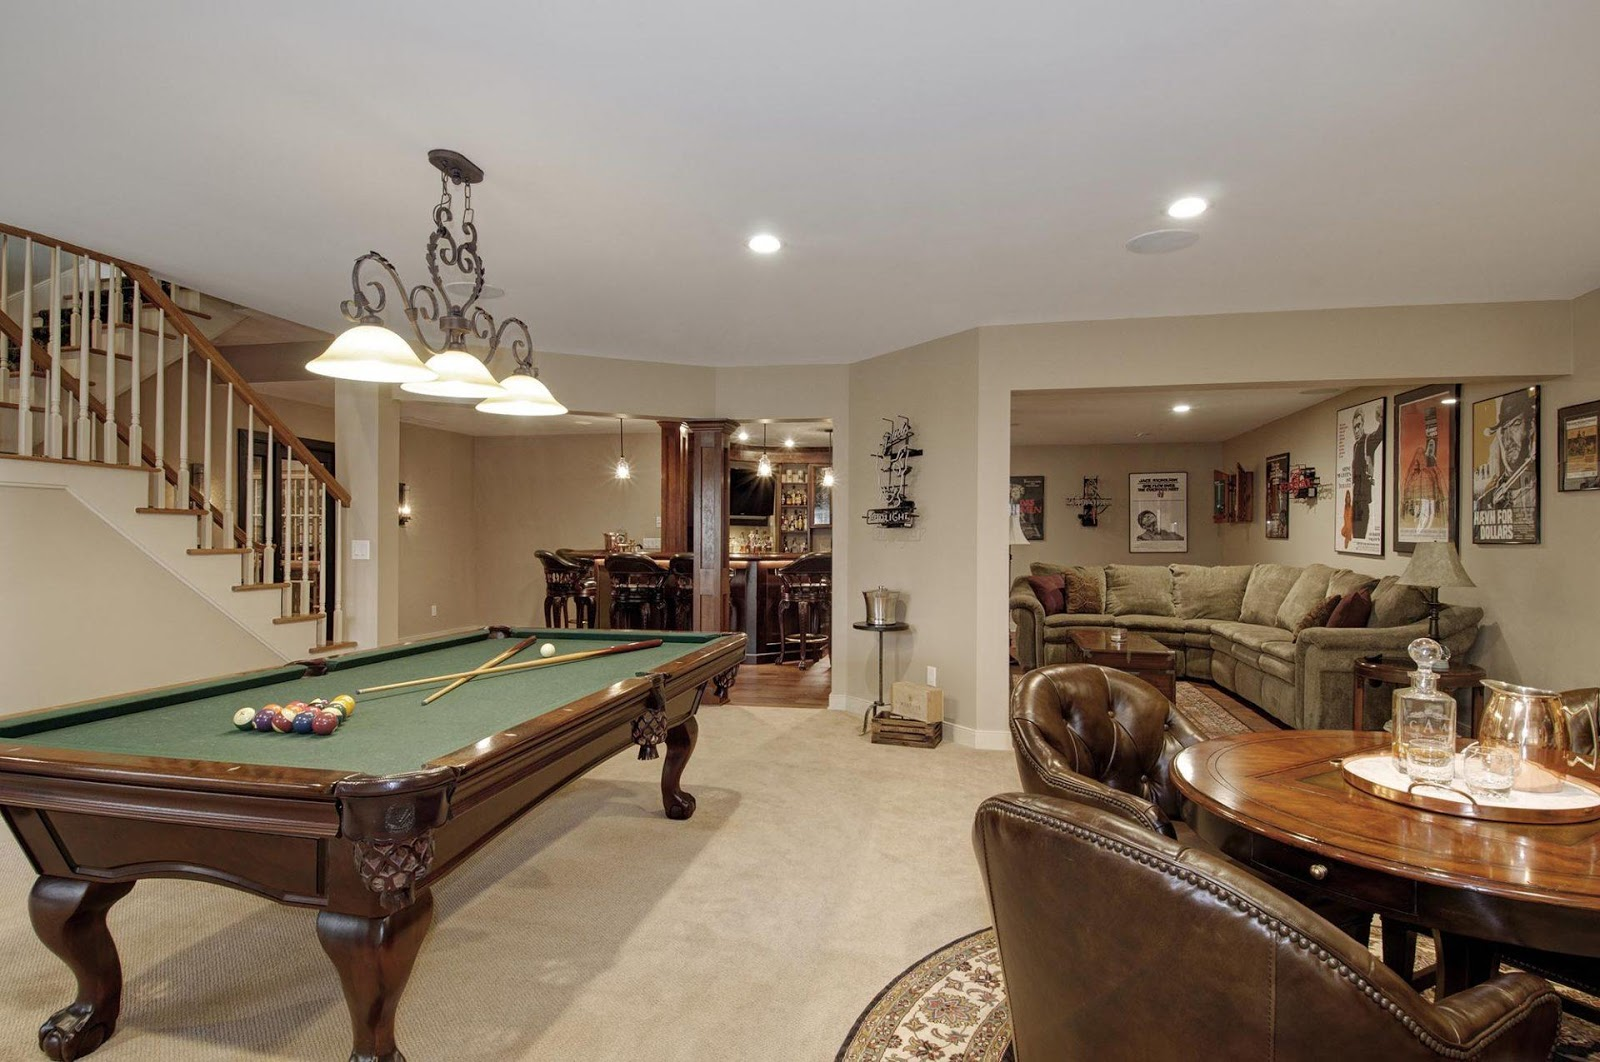 Basement Remodeling Ideas 5 Great Ideas For Your Basement